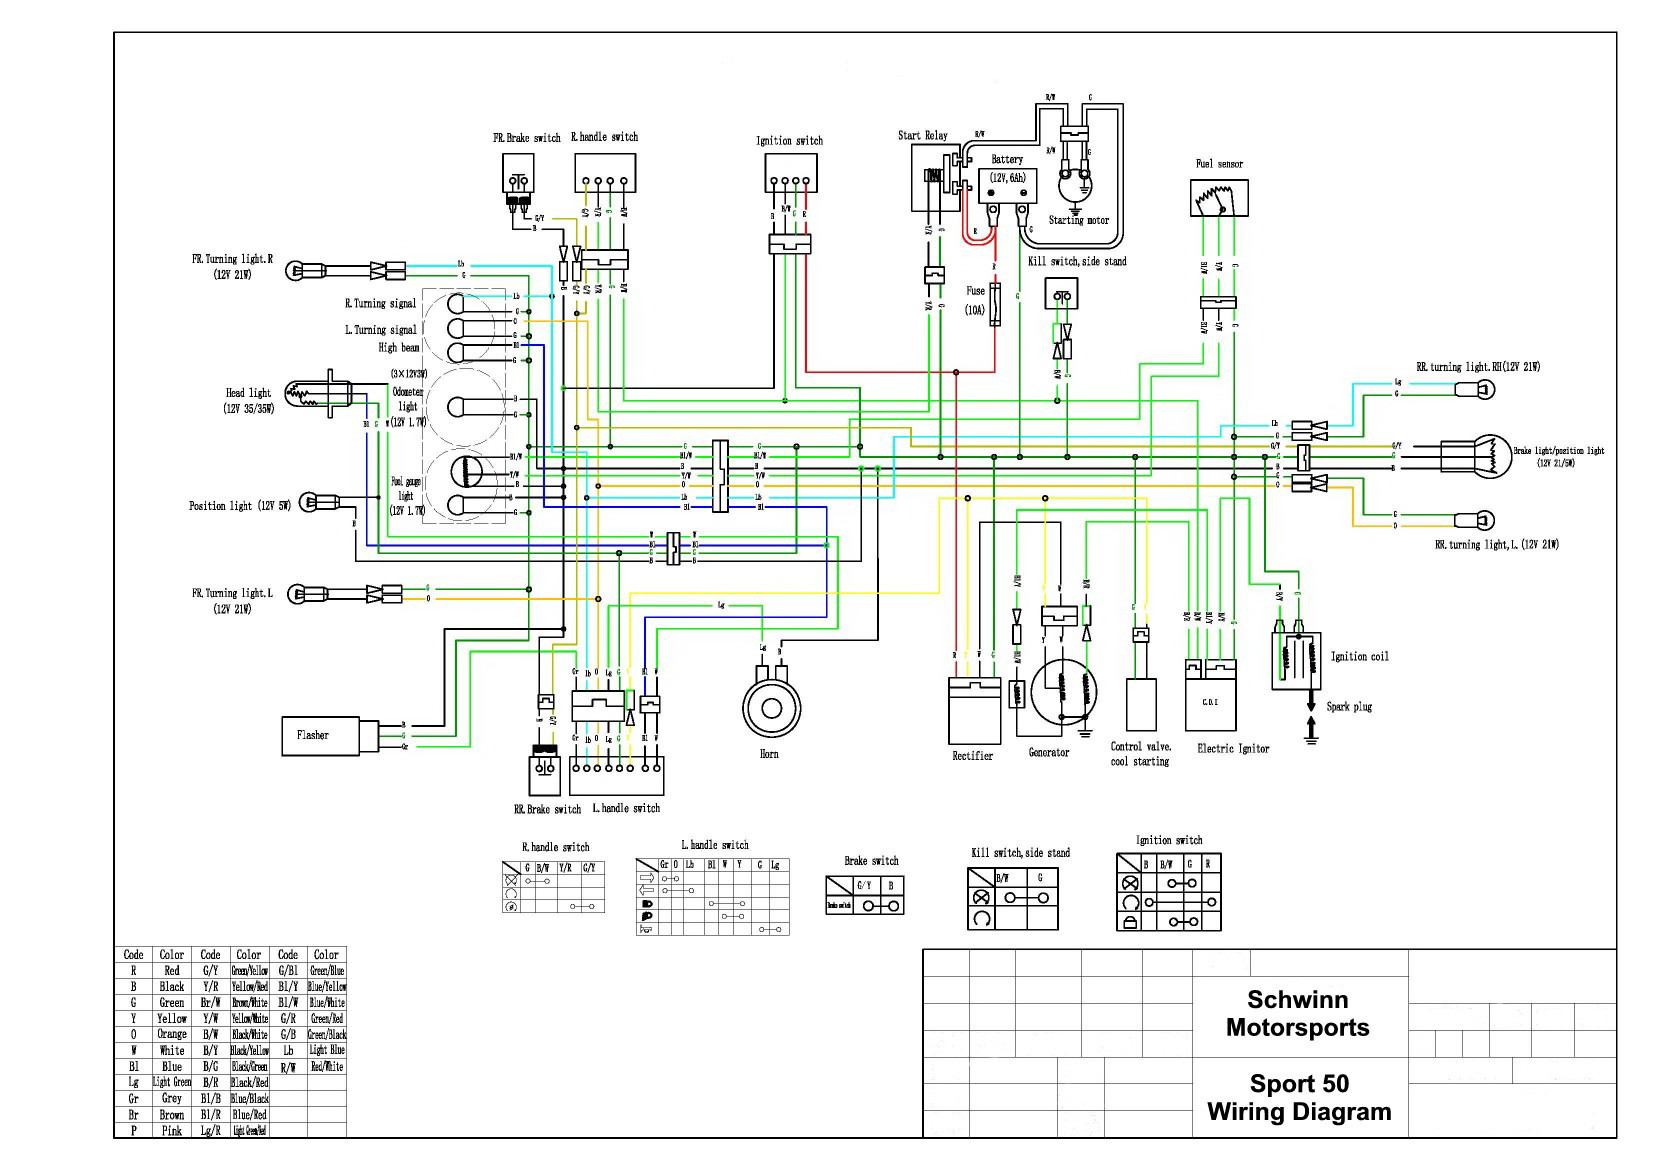 Vento Wiring Diagram Wiring Diagram Schematics KTM Scooter Vento Phantom Scooter  Wiring Diagram